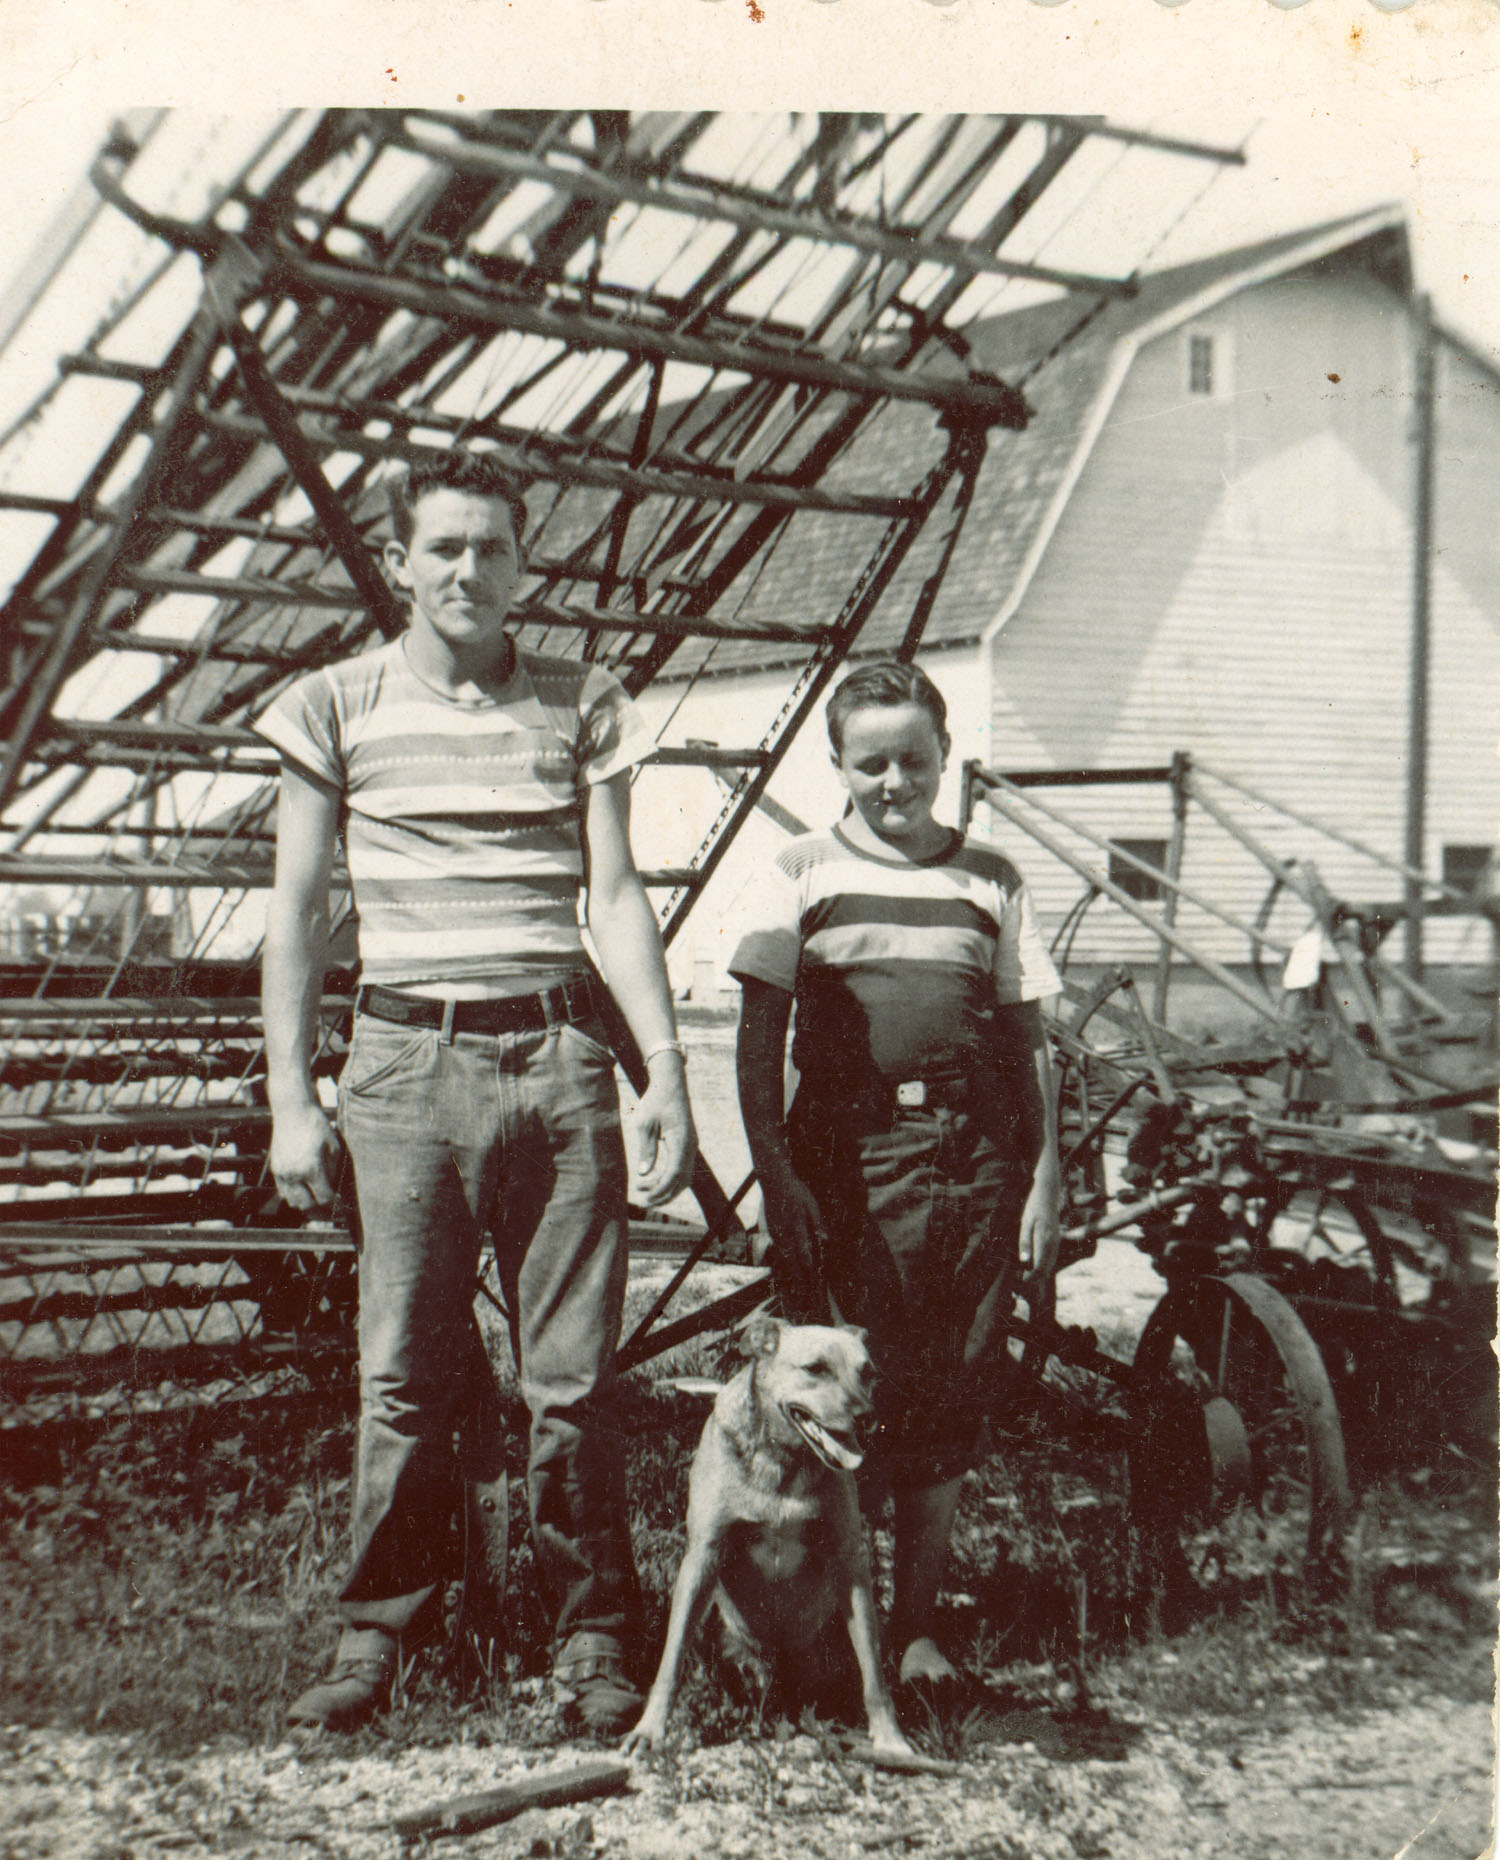 Bishop Farmstead - Historical Images - Robbins Boys